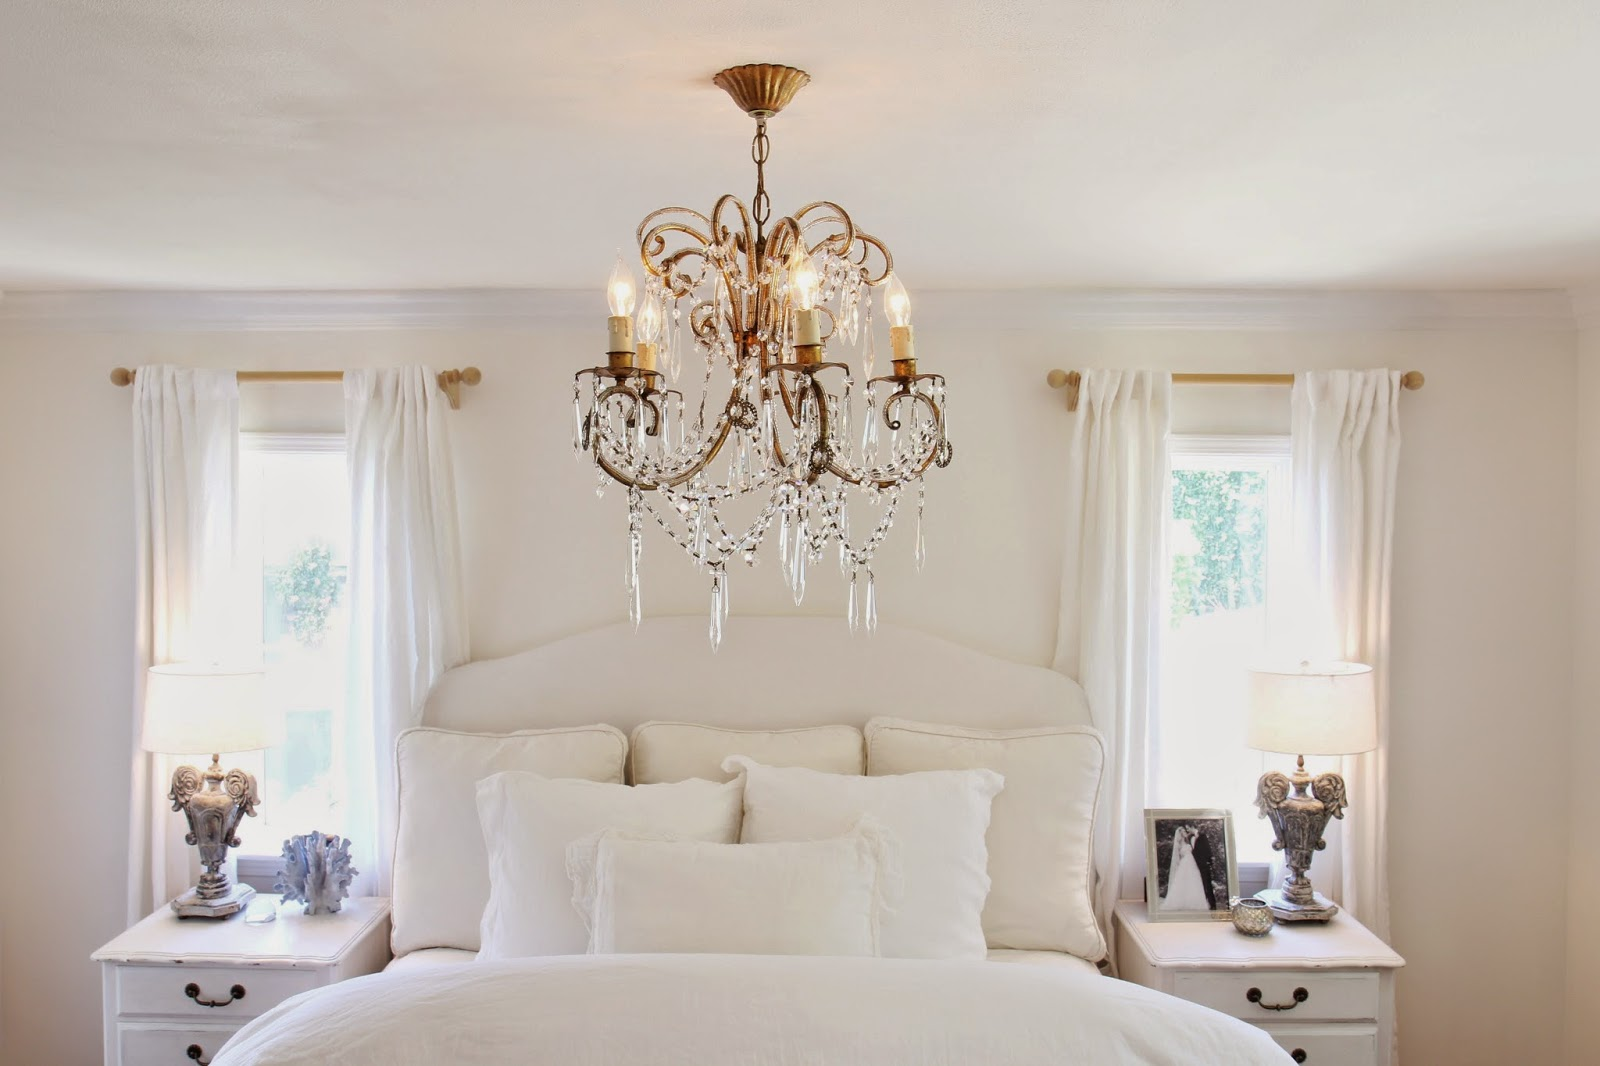 Nora\'s Nest: A Chandelier for the Master Bedroom